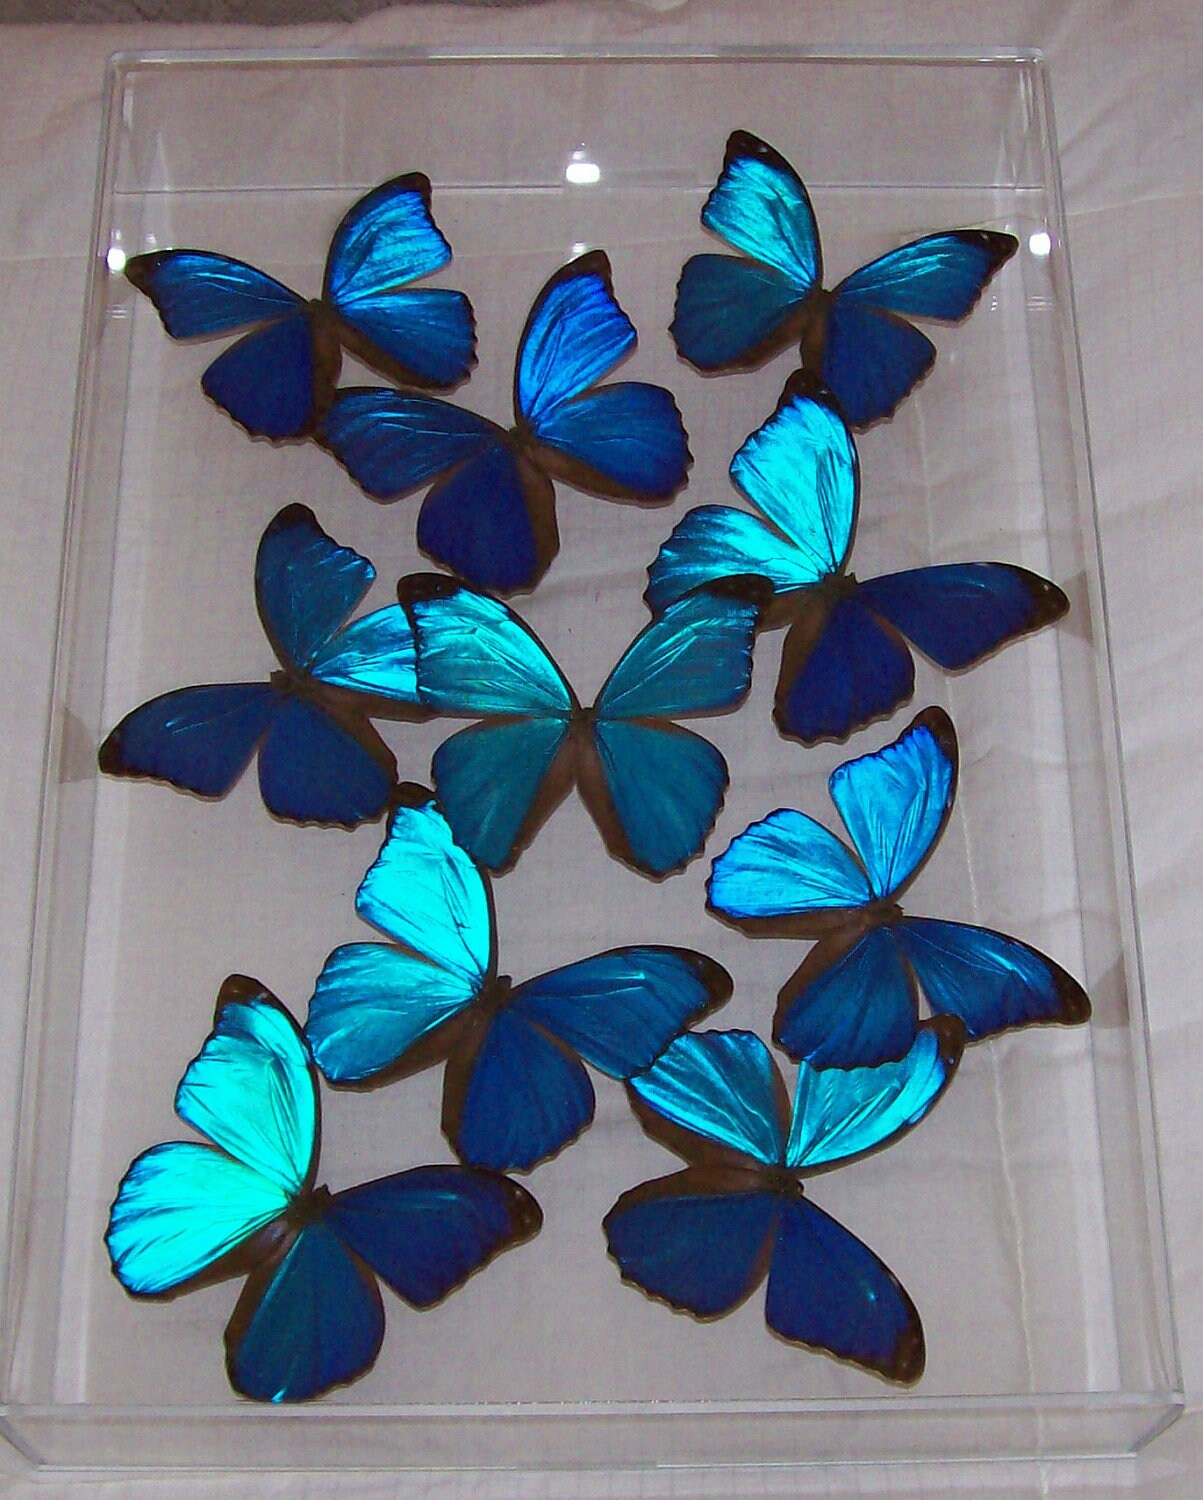 Swarm Of Butterflies Tumblr The gallery for -->...